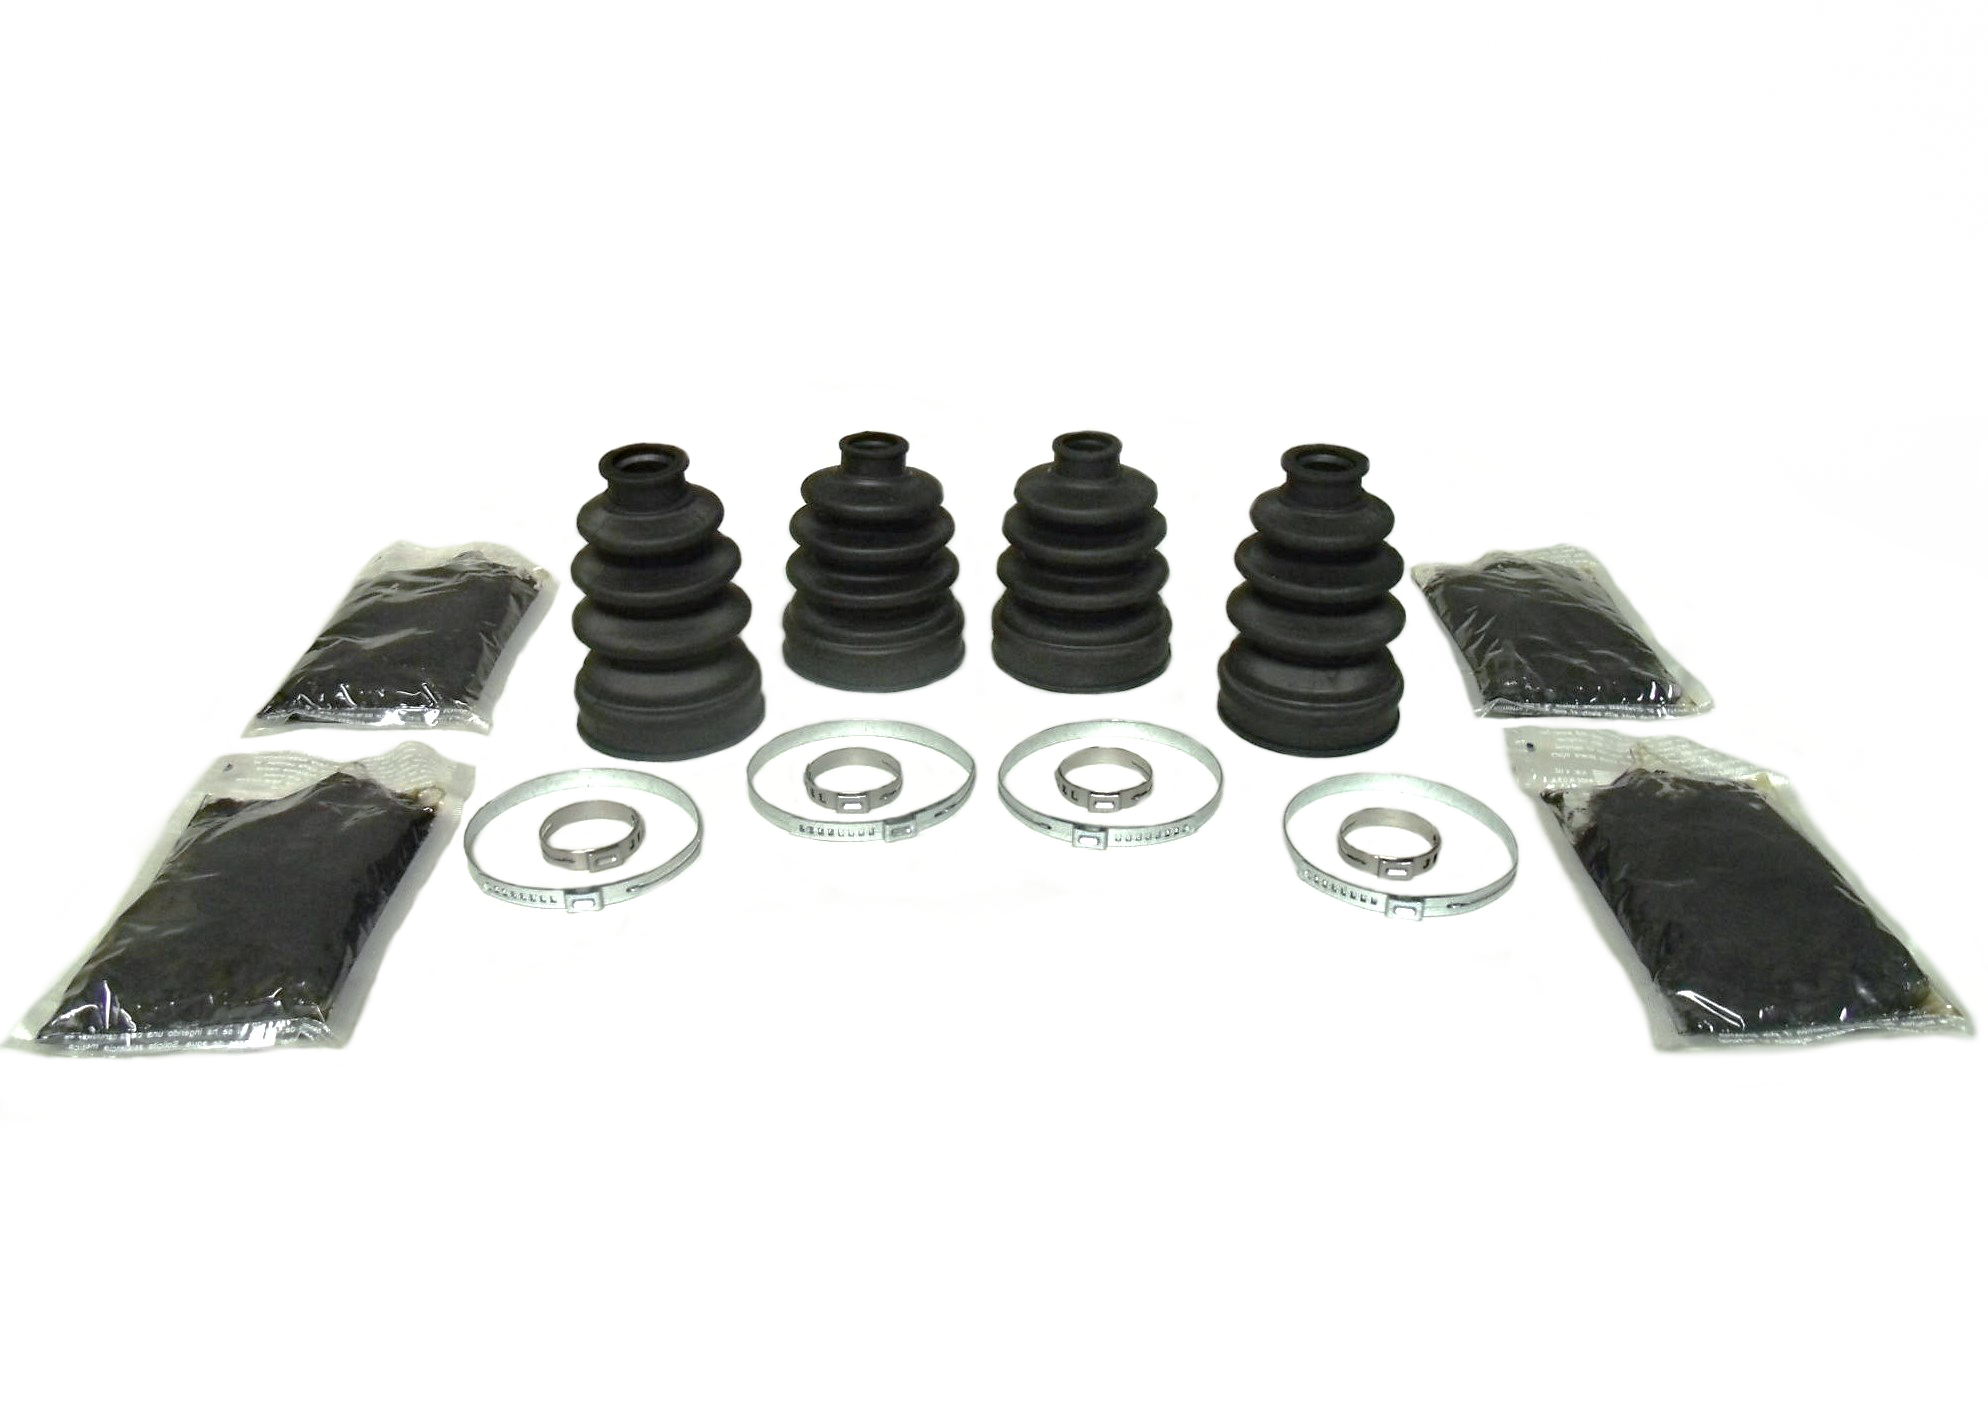 Set of Heavy Duty Front Axle CV Boot Kits 2004-2008 Kubota RTV 900 4x4 UTV